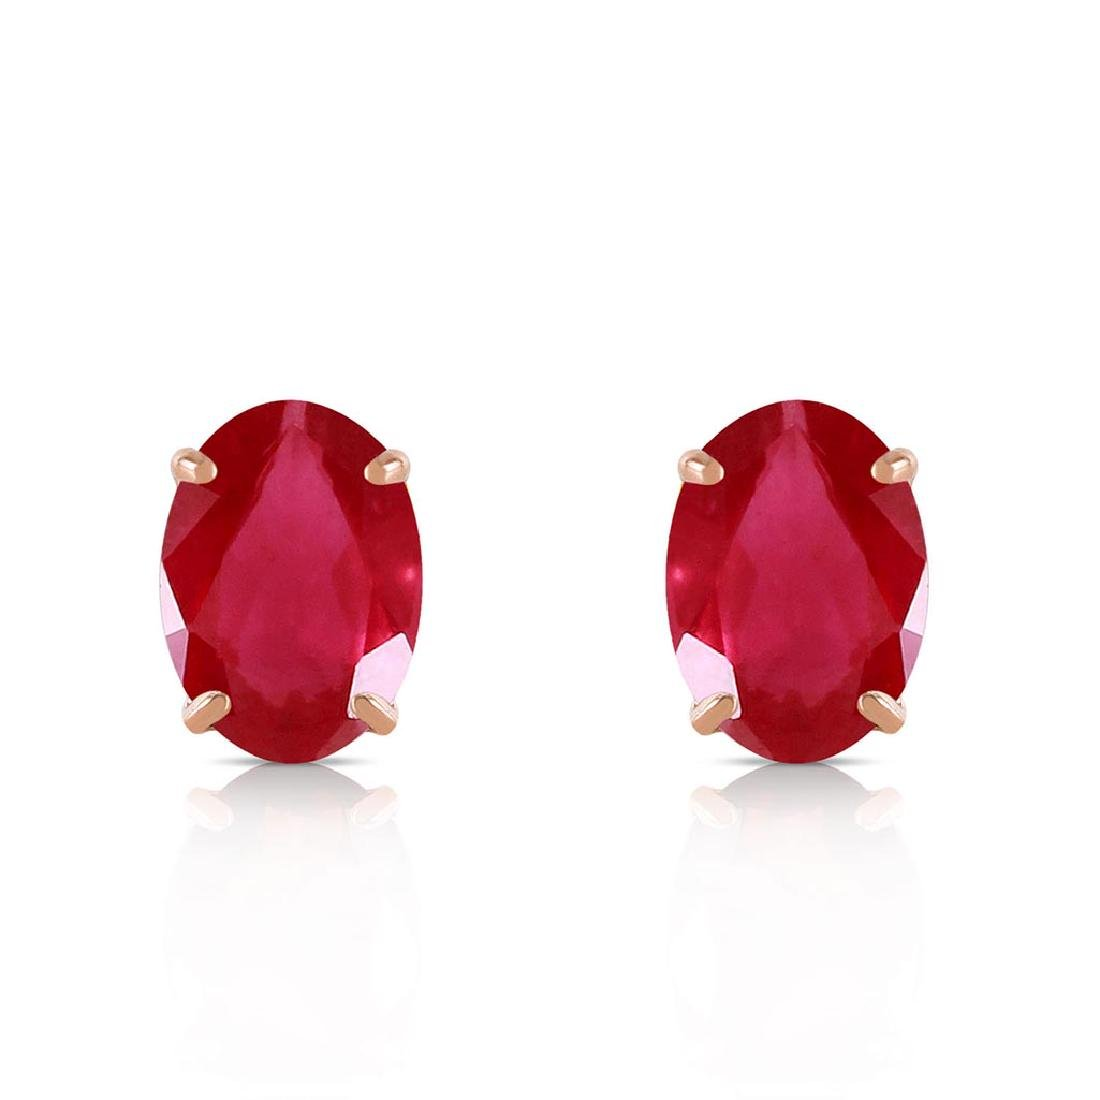 1.8 Carat 14K Solid Gold Stud Earrings Natural Ruby - 2